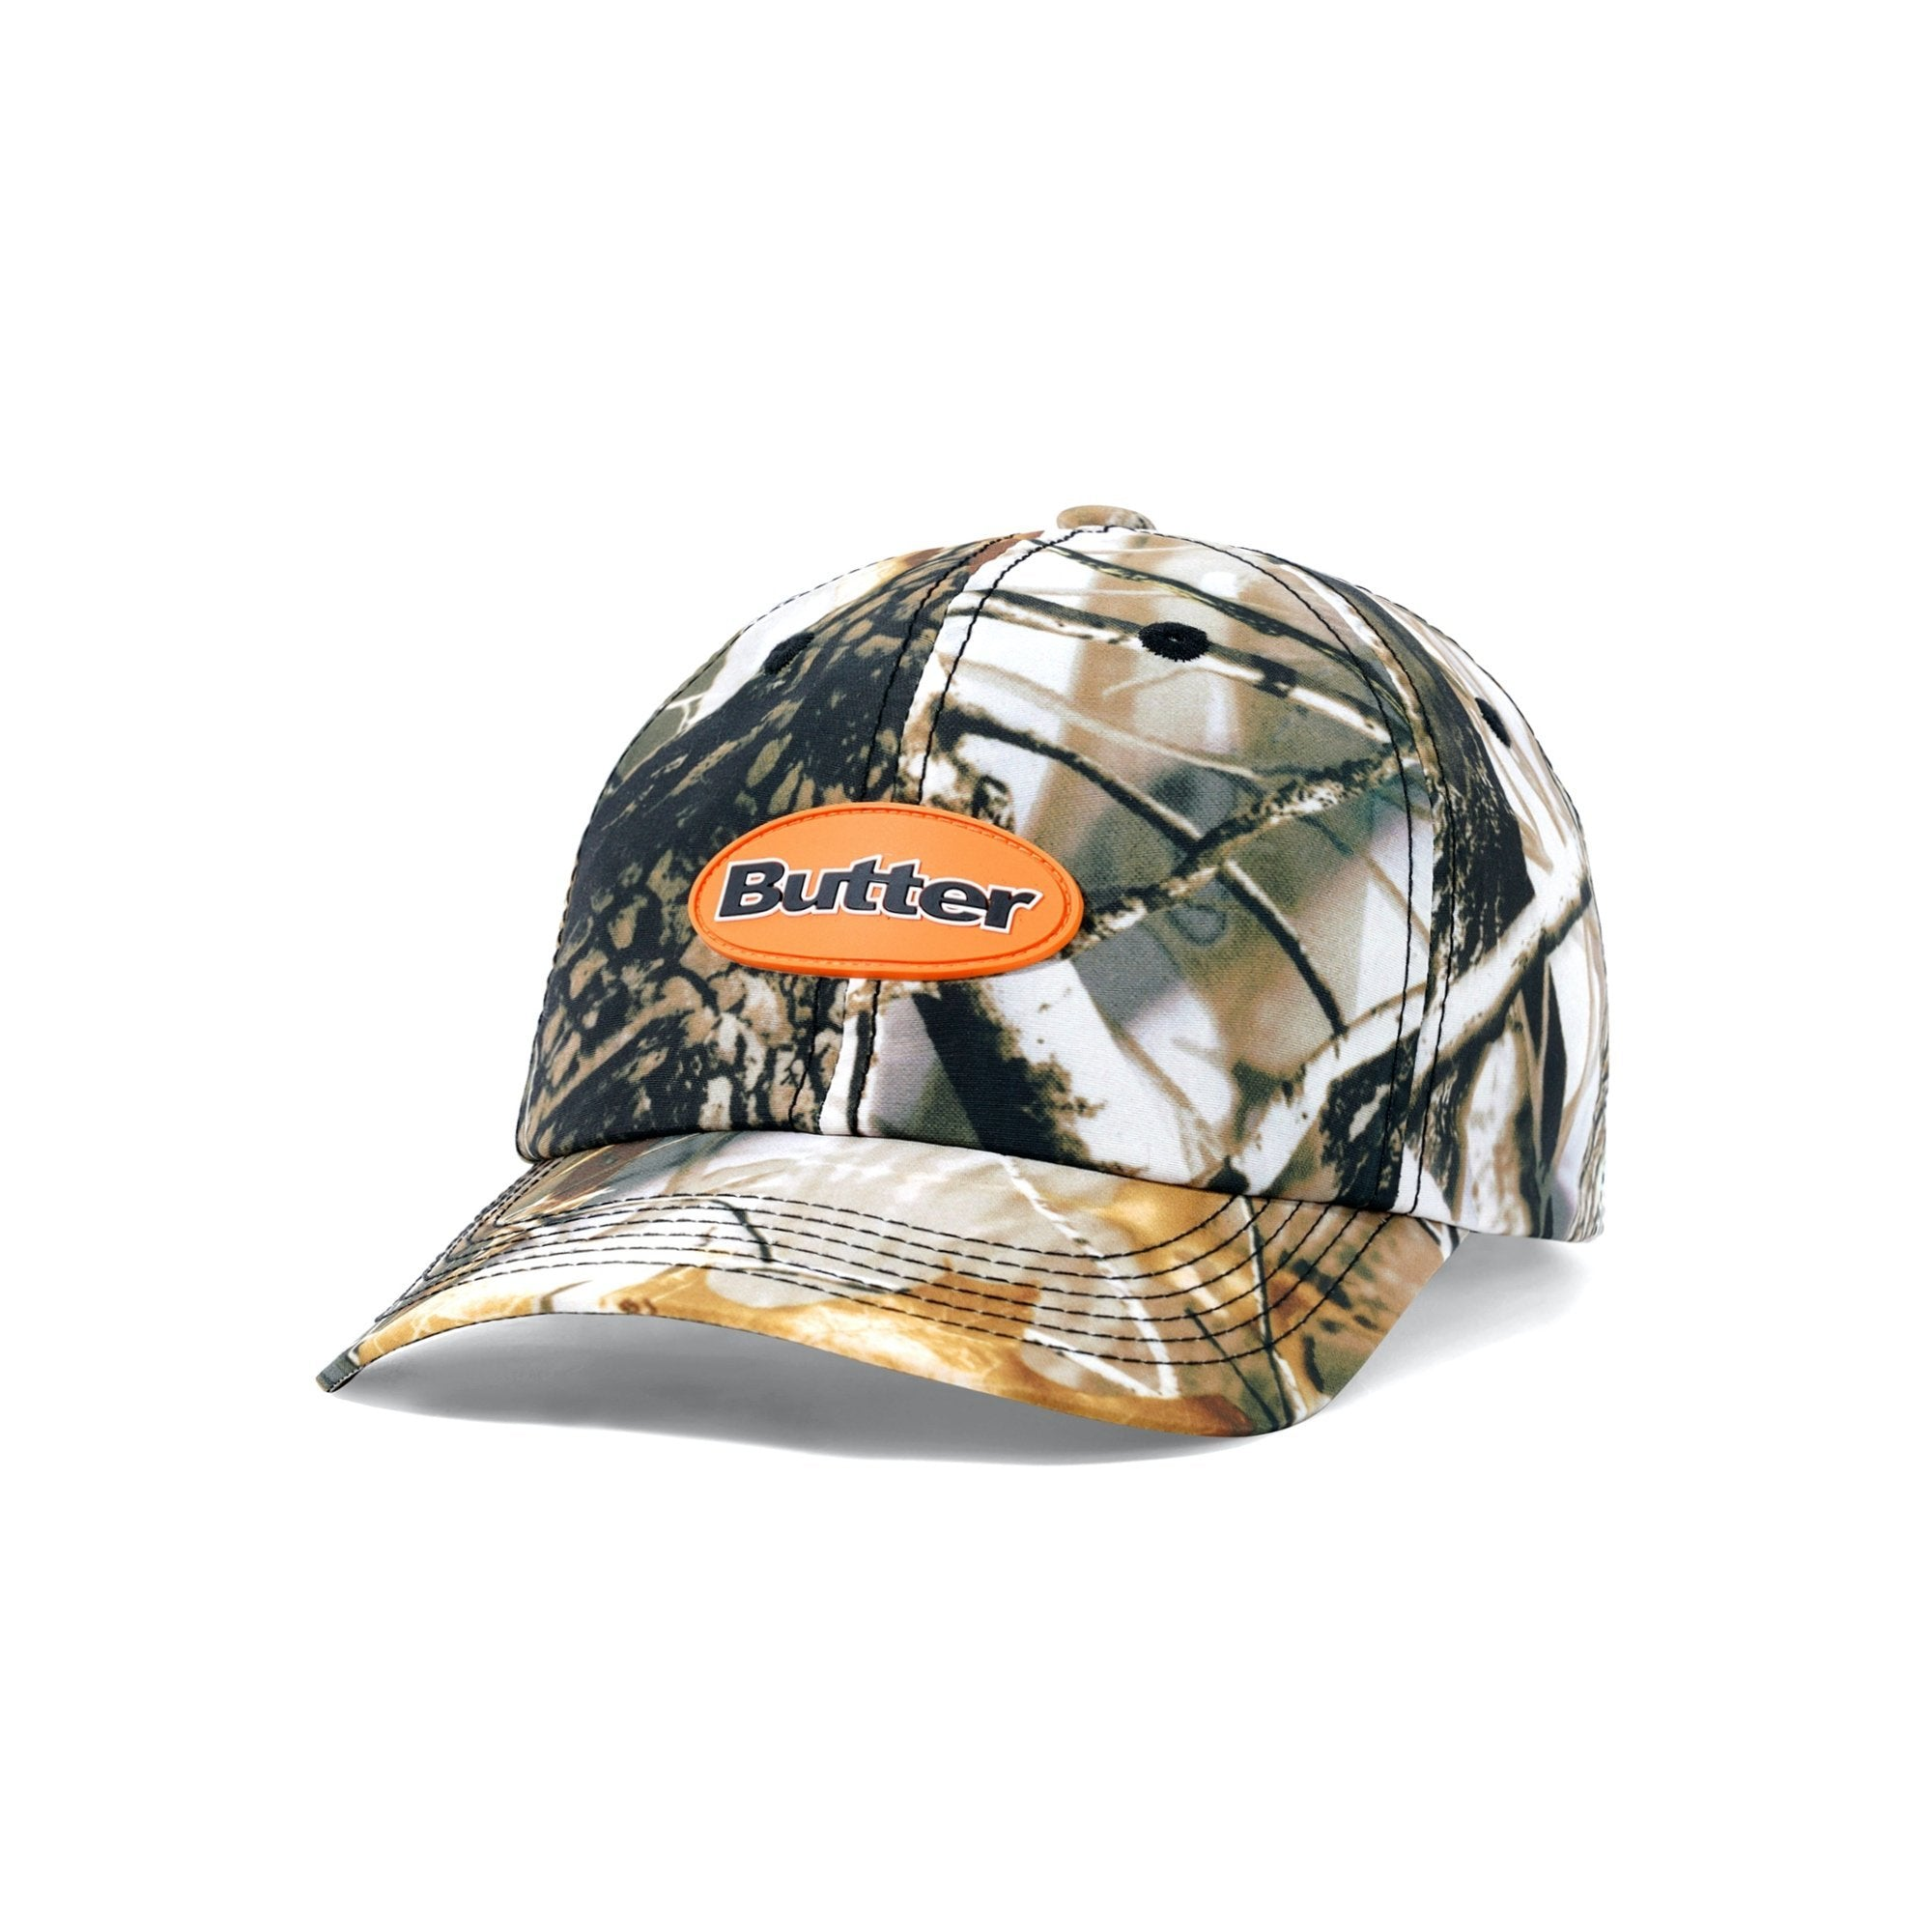 Butter Goods Field Cap Product Photo #1